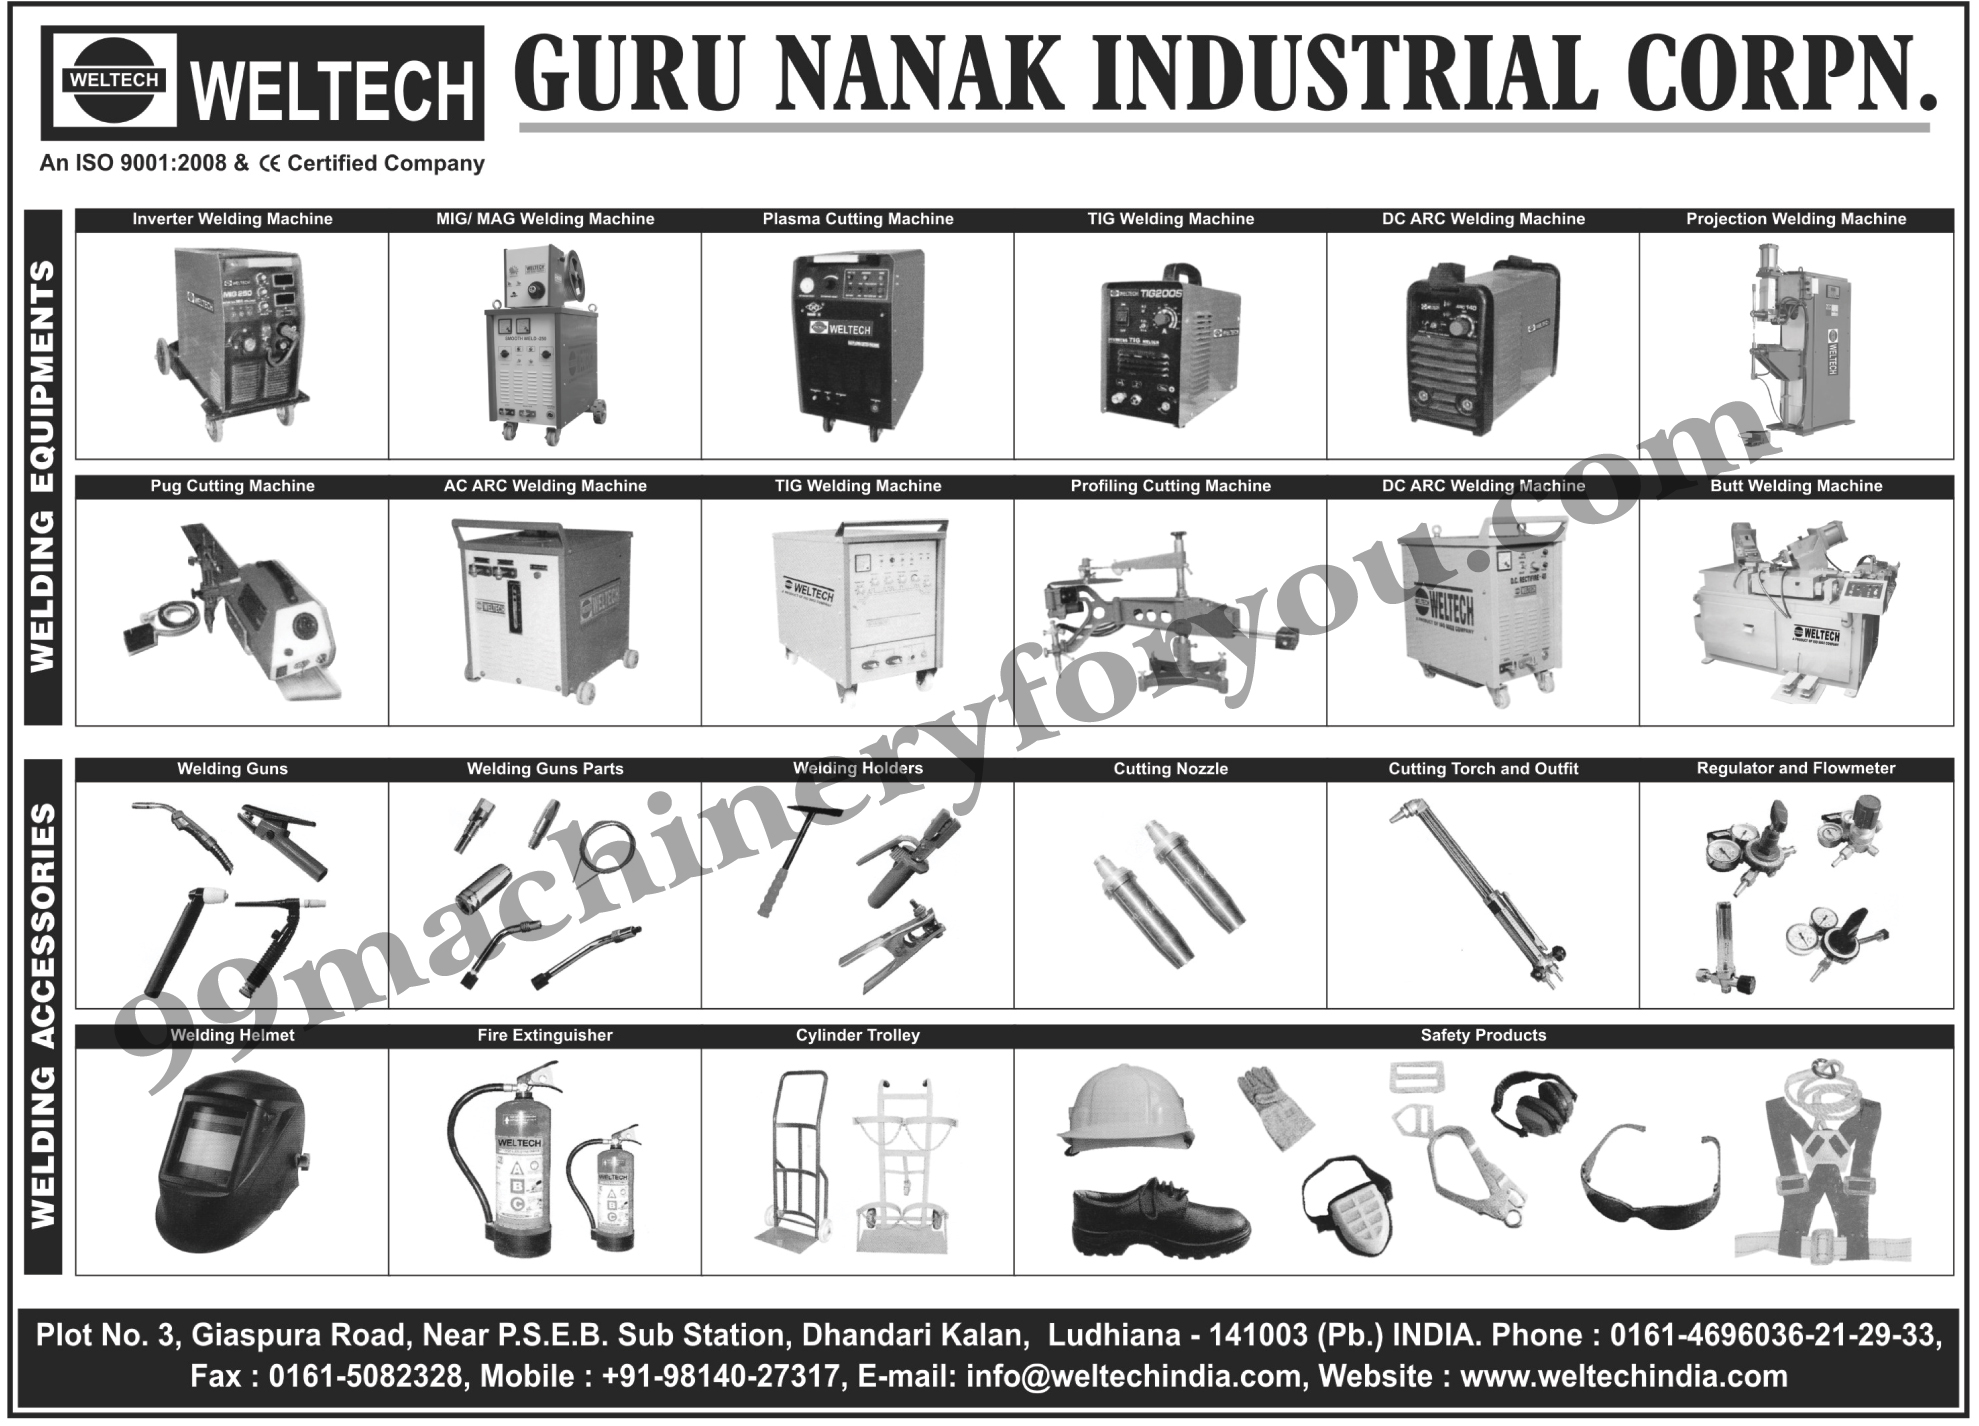 Inverter Welding Machines, MIG Welding Machines, MAG Welding Machines, Plasma Cutting Machines, DC Arc Welding Machines, Projection Welding Machines, Butt Welding Machines, Pug Cutting Machines, AC Arc Welding Machines, Profiling Cutting Machines, Profile Cutting Machines, Welding Accessories, Welding Gun Parts, Welding Holders, Cutting Torch, Cutting Outfit, Regulator, Flowmeter, Welding Helmet, Fire Extinguishers, Cylinder Trolleys, Safety Products, Dust Mask, Safety Hand Gloves, Head Phones, Safety Belt Hook, Safety Belt Buckels, Safety Helmets, Safety Belt, Safety Goggles, PVC Safety Shoes, Smart cleaning Machines, Back Vac Cleaning Machines, Alpha Plus Cleaning Machines, Ecoline Industrial Vaccum Sweepers, Plasma Cutting Spares, Welding Machine, Mig Machine, Fire Safety Products